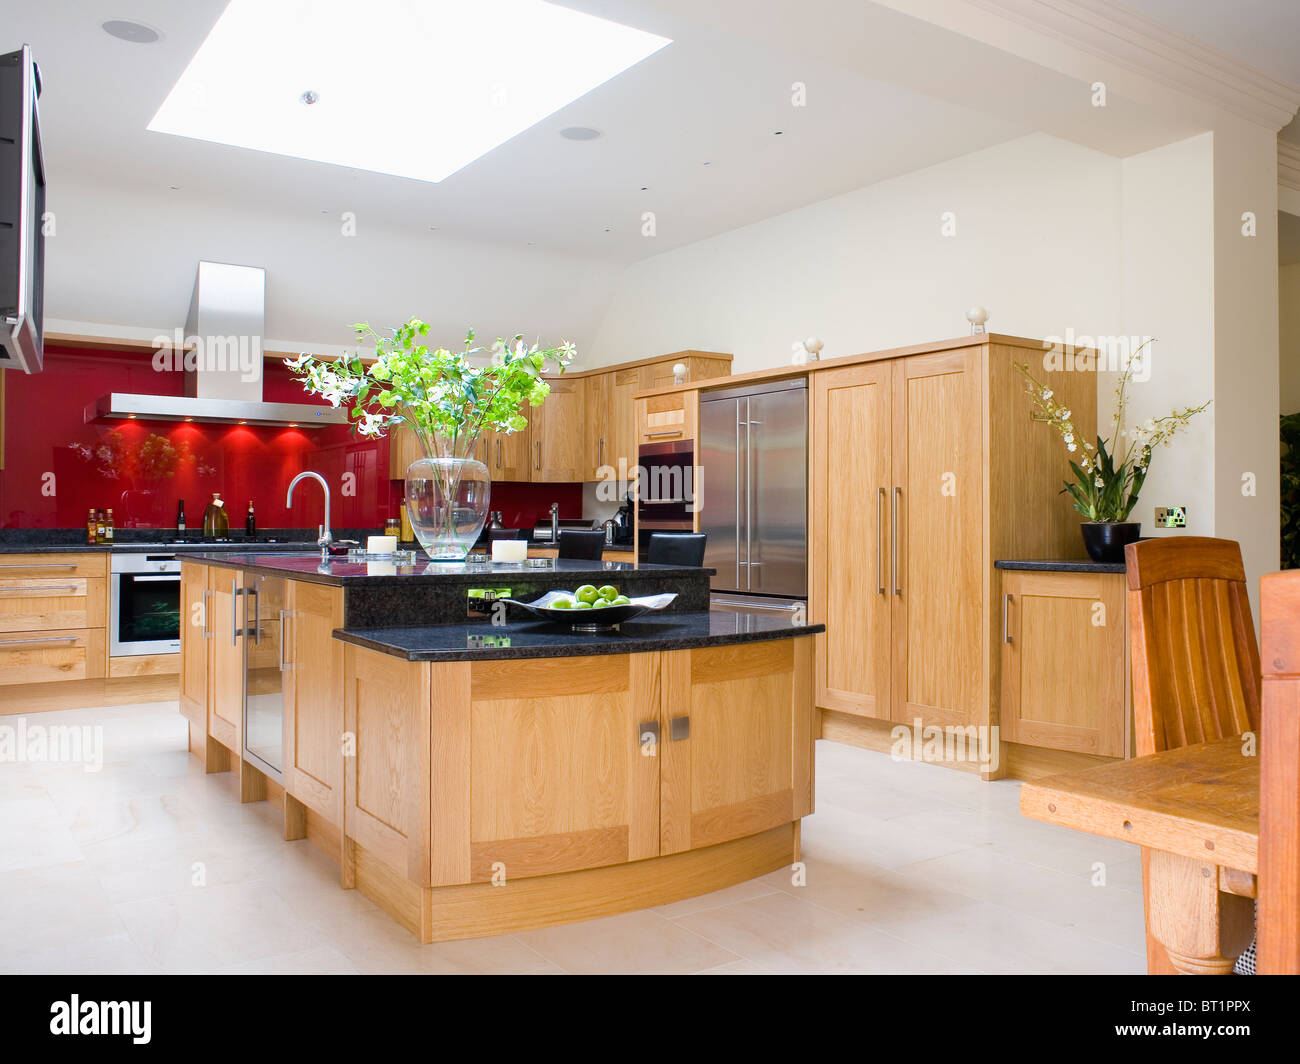 Limestone Flooring In Kitchen Limestone Flooring And Pale Wood Units In Open Plan Kitchen And